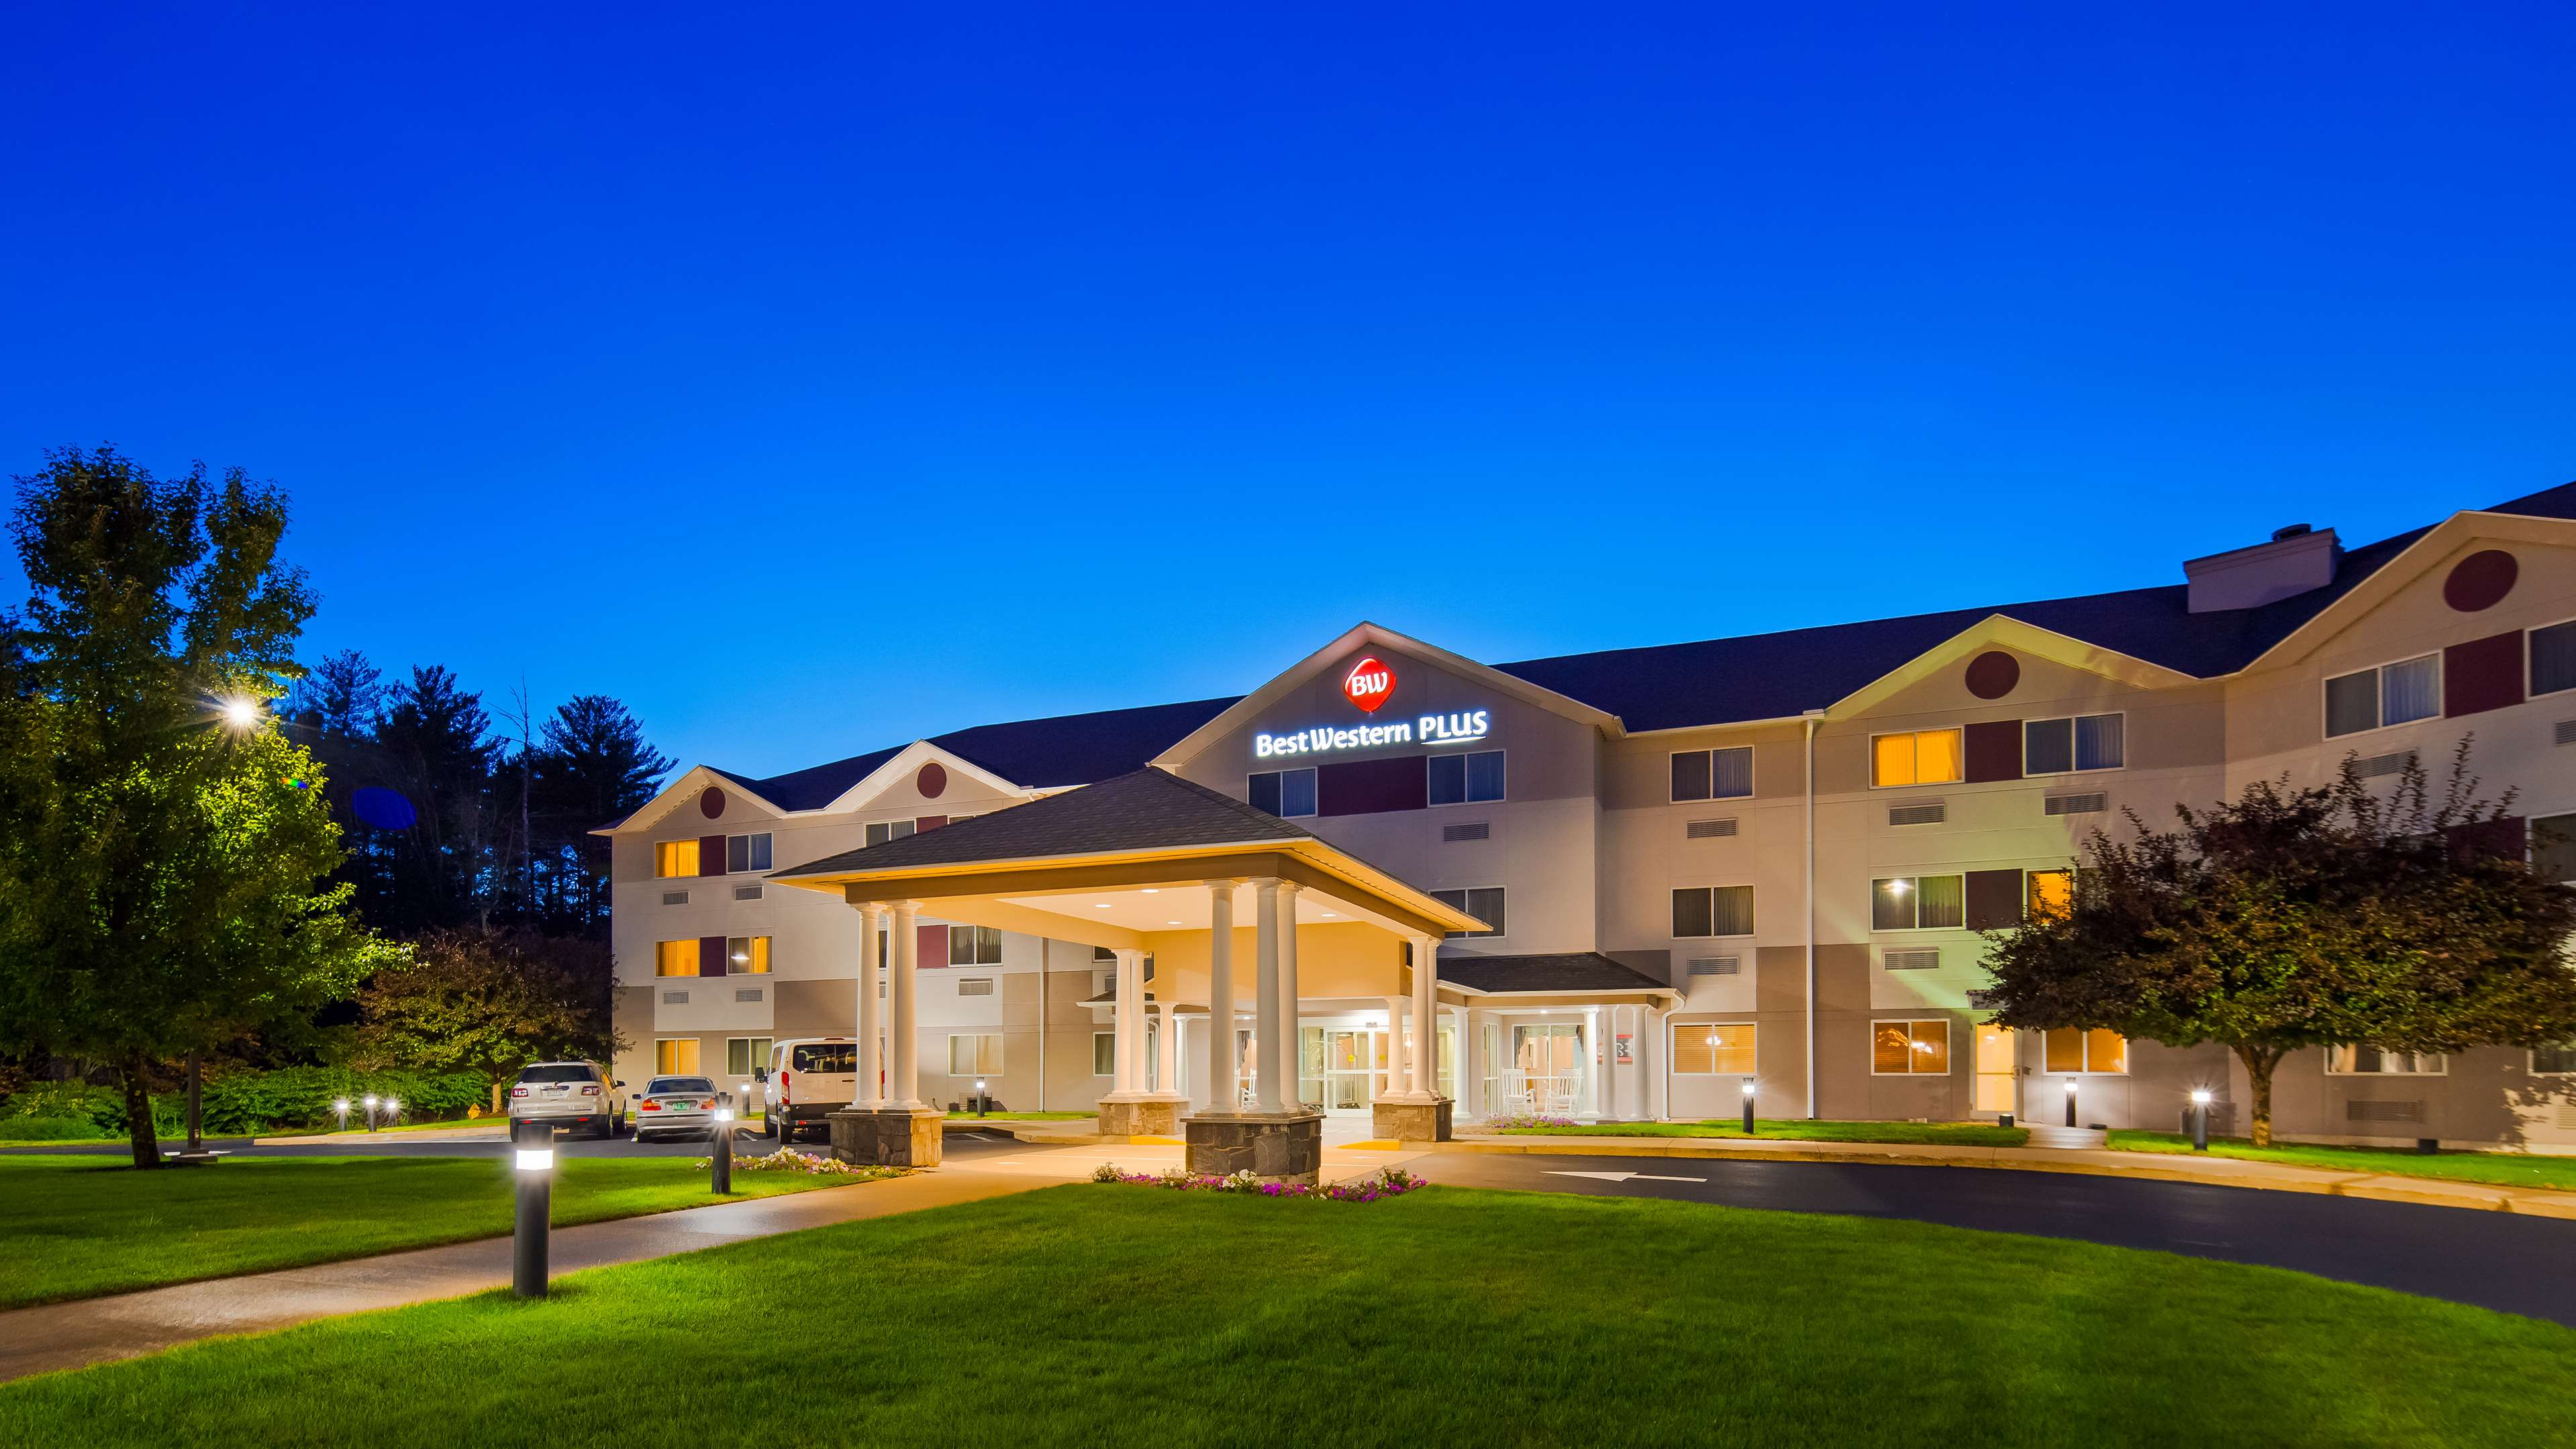 Best Western Plus Executive Court Inn & Conference Center image 0